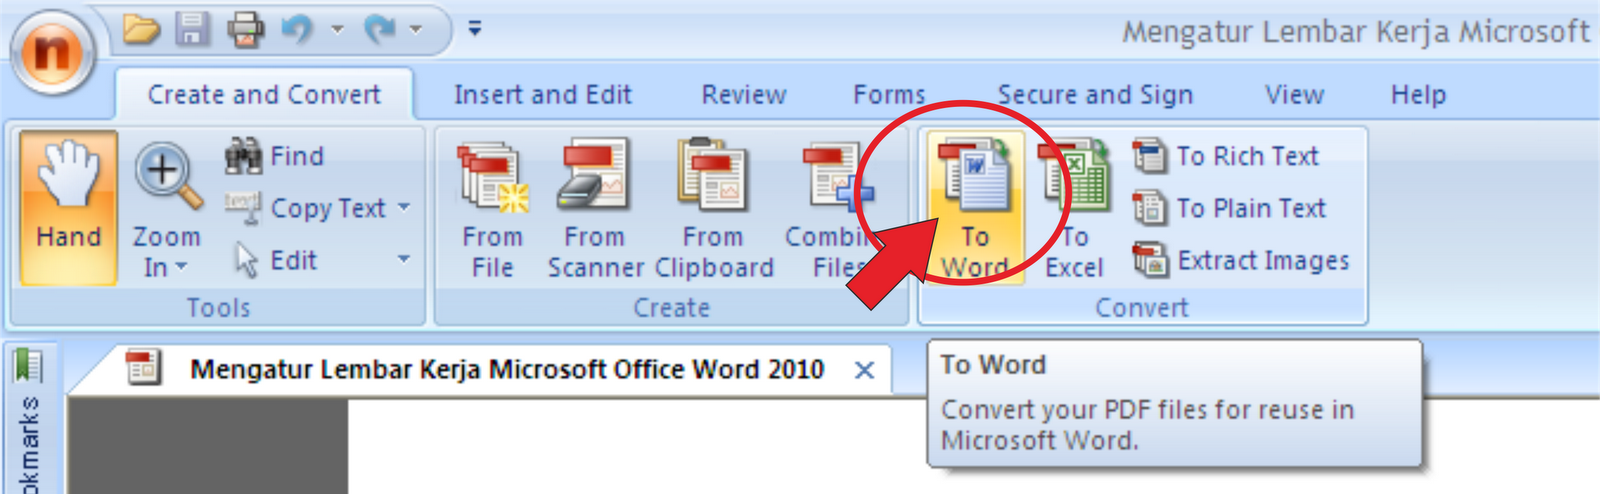 how to open a pdf file in excel 2003